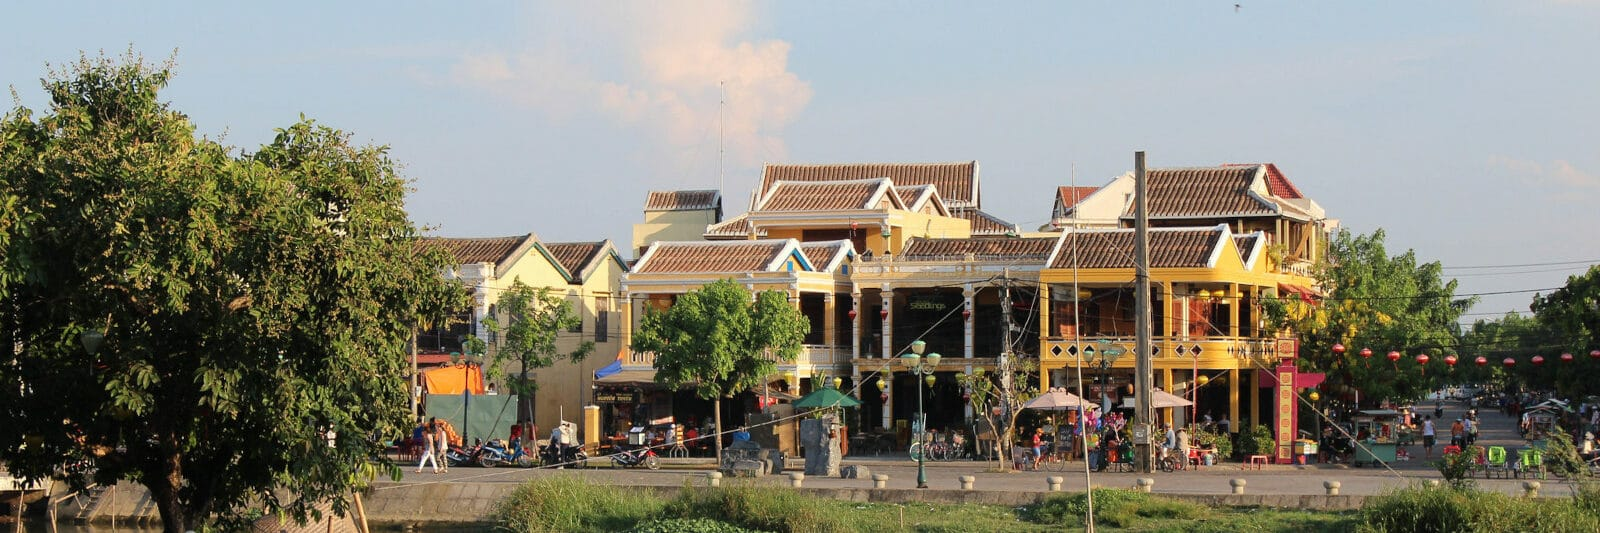 Image of old town hoi an during the day in vietnam